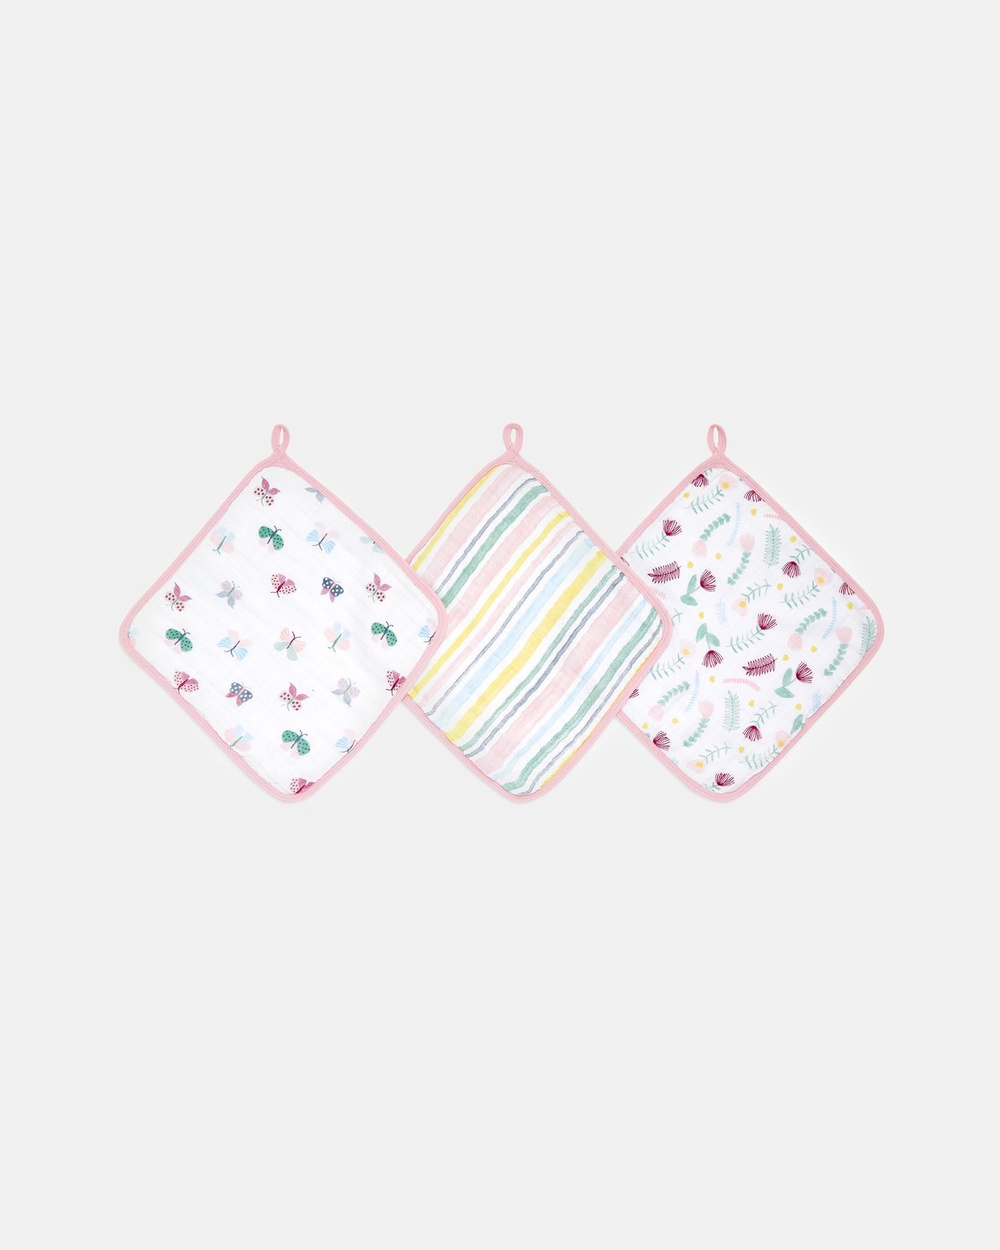 Aden & Anais 3 Pack Essentials Muslin Washcloths Towels Face Washers Floral 3-Pack